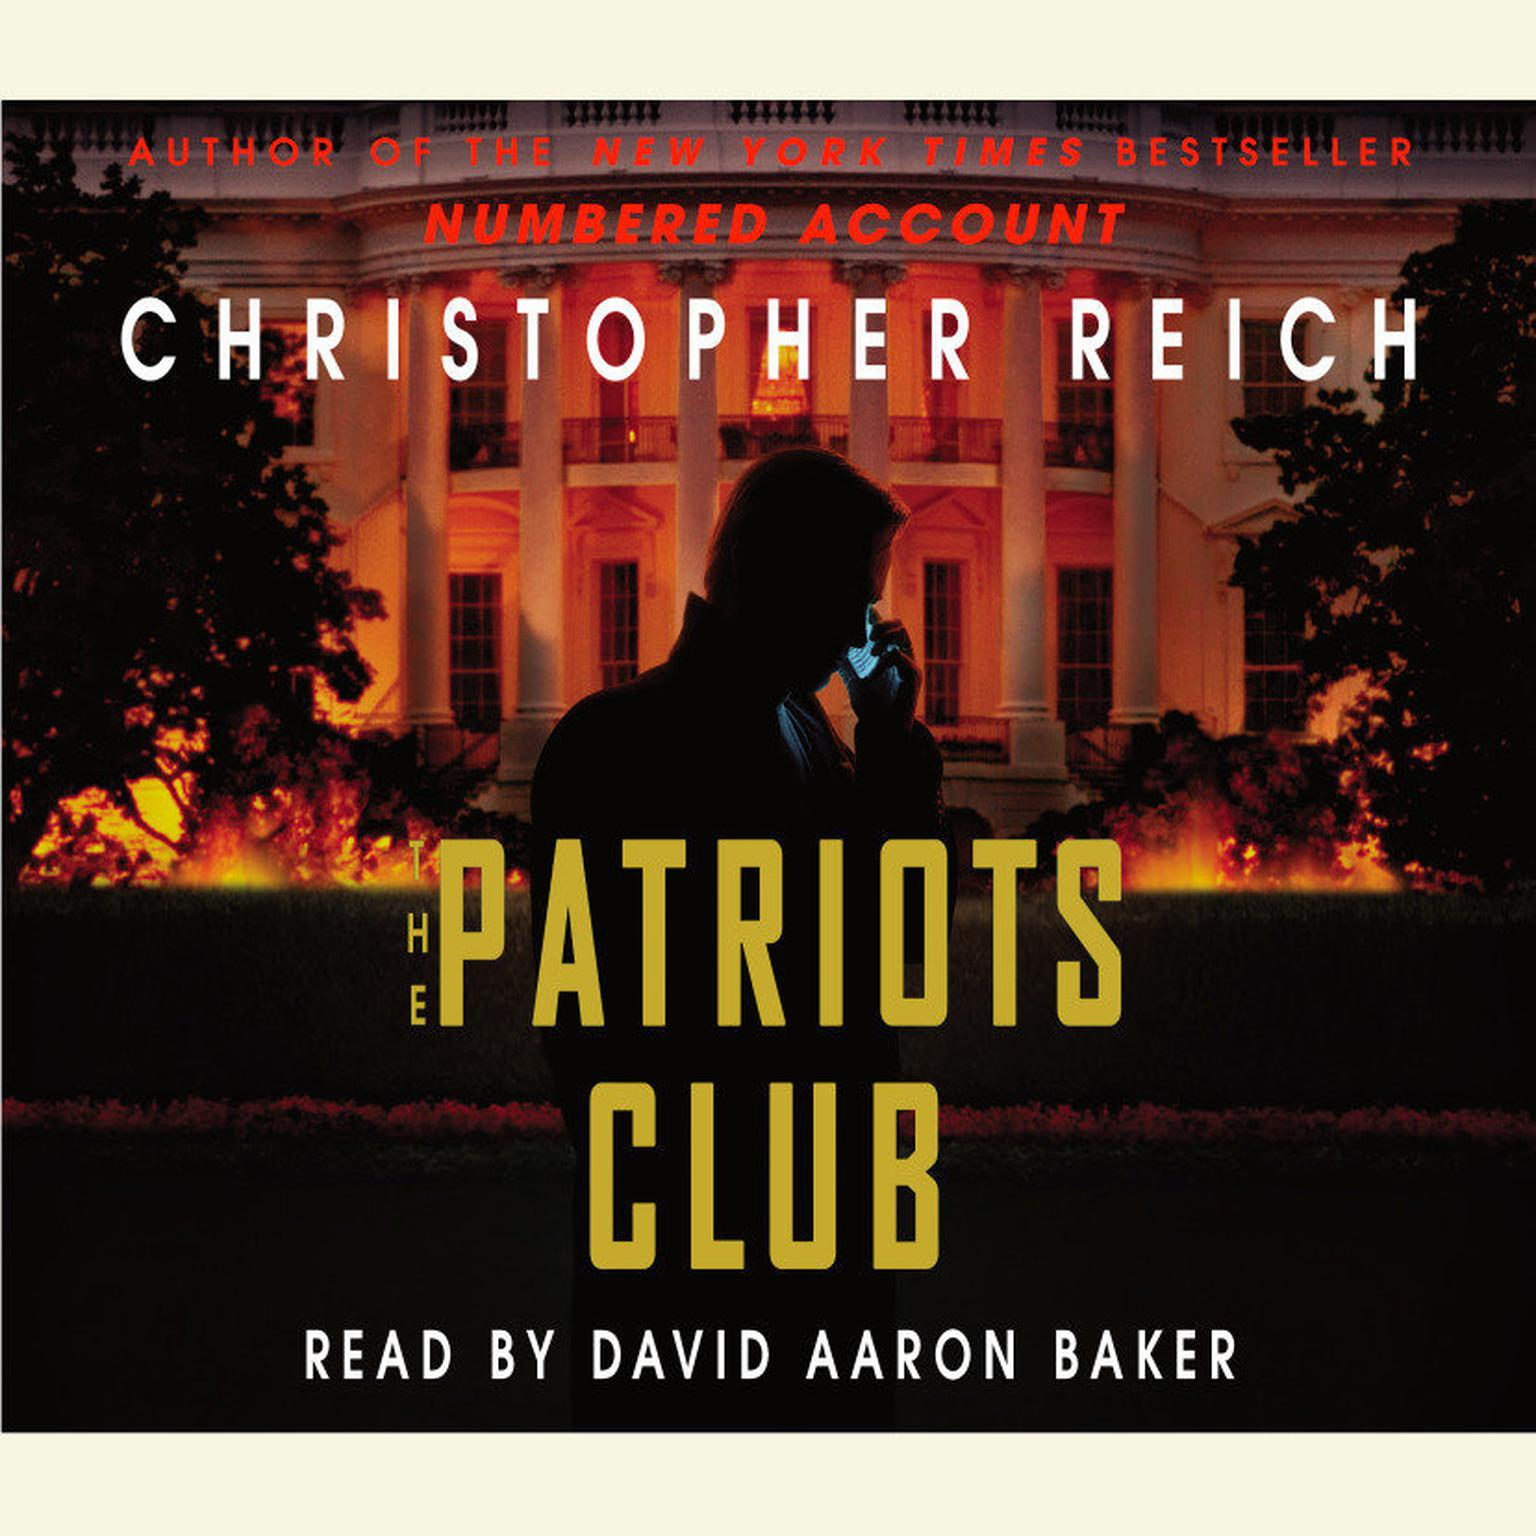 Printable The Patriots Club Audiobook Cover Art